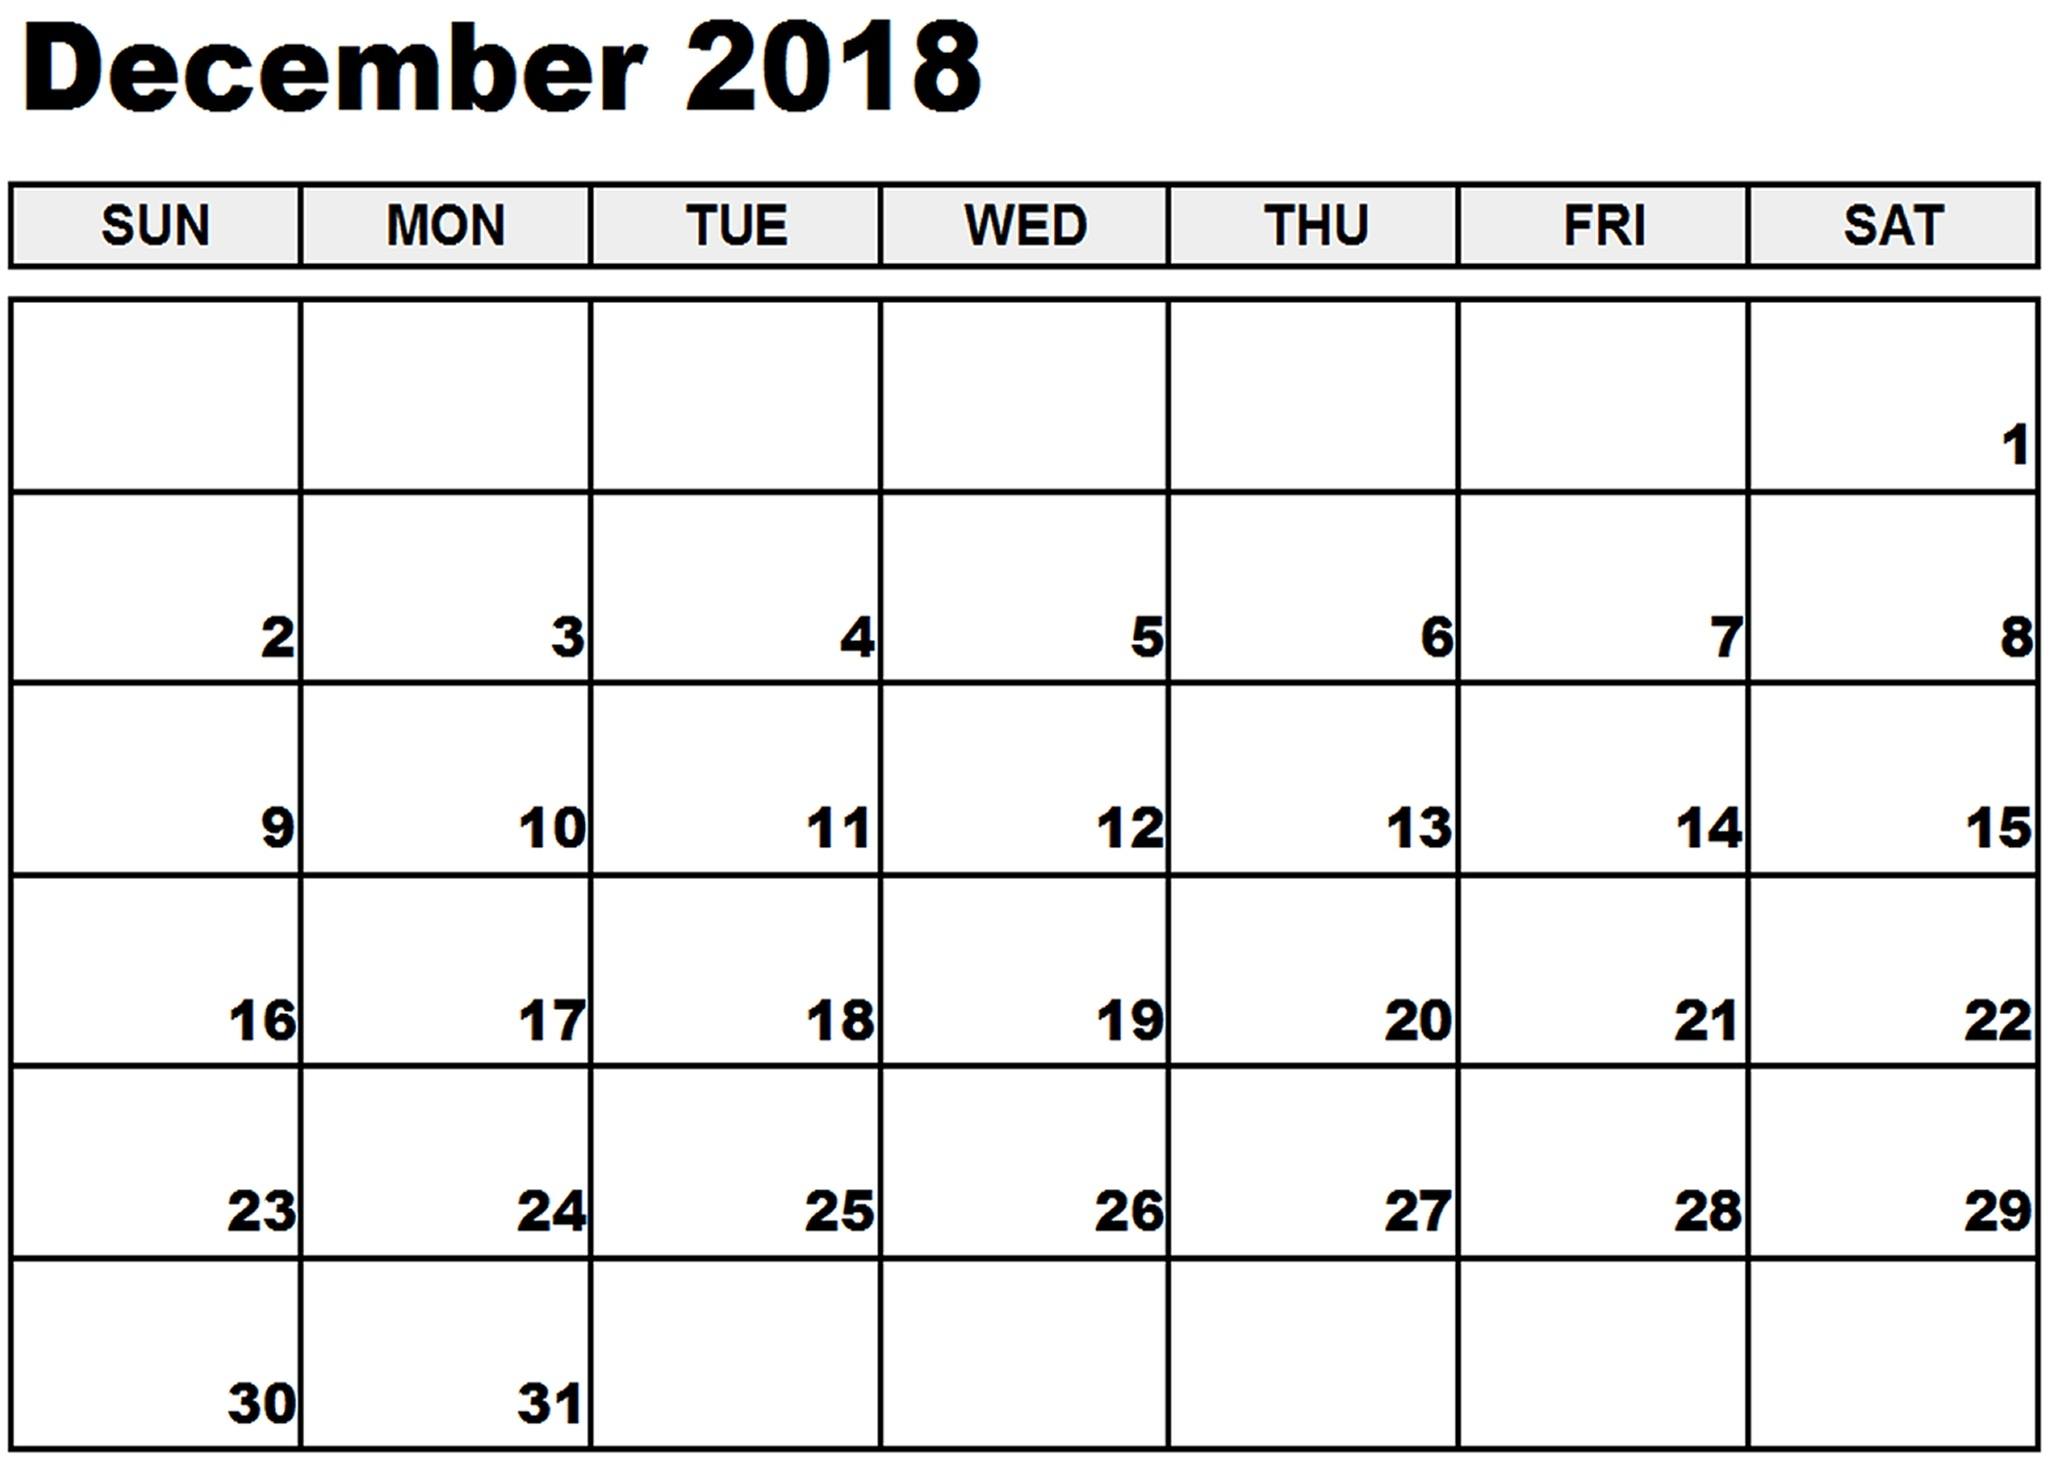 December 2018 Printable Calendar Download